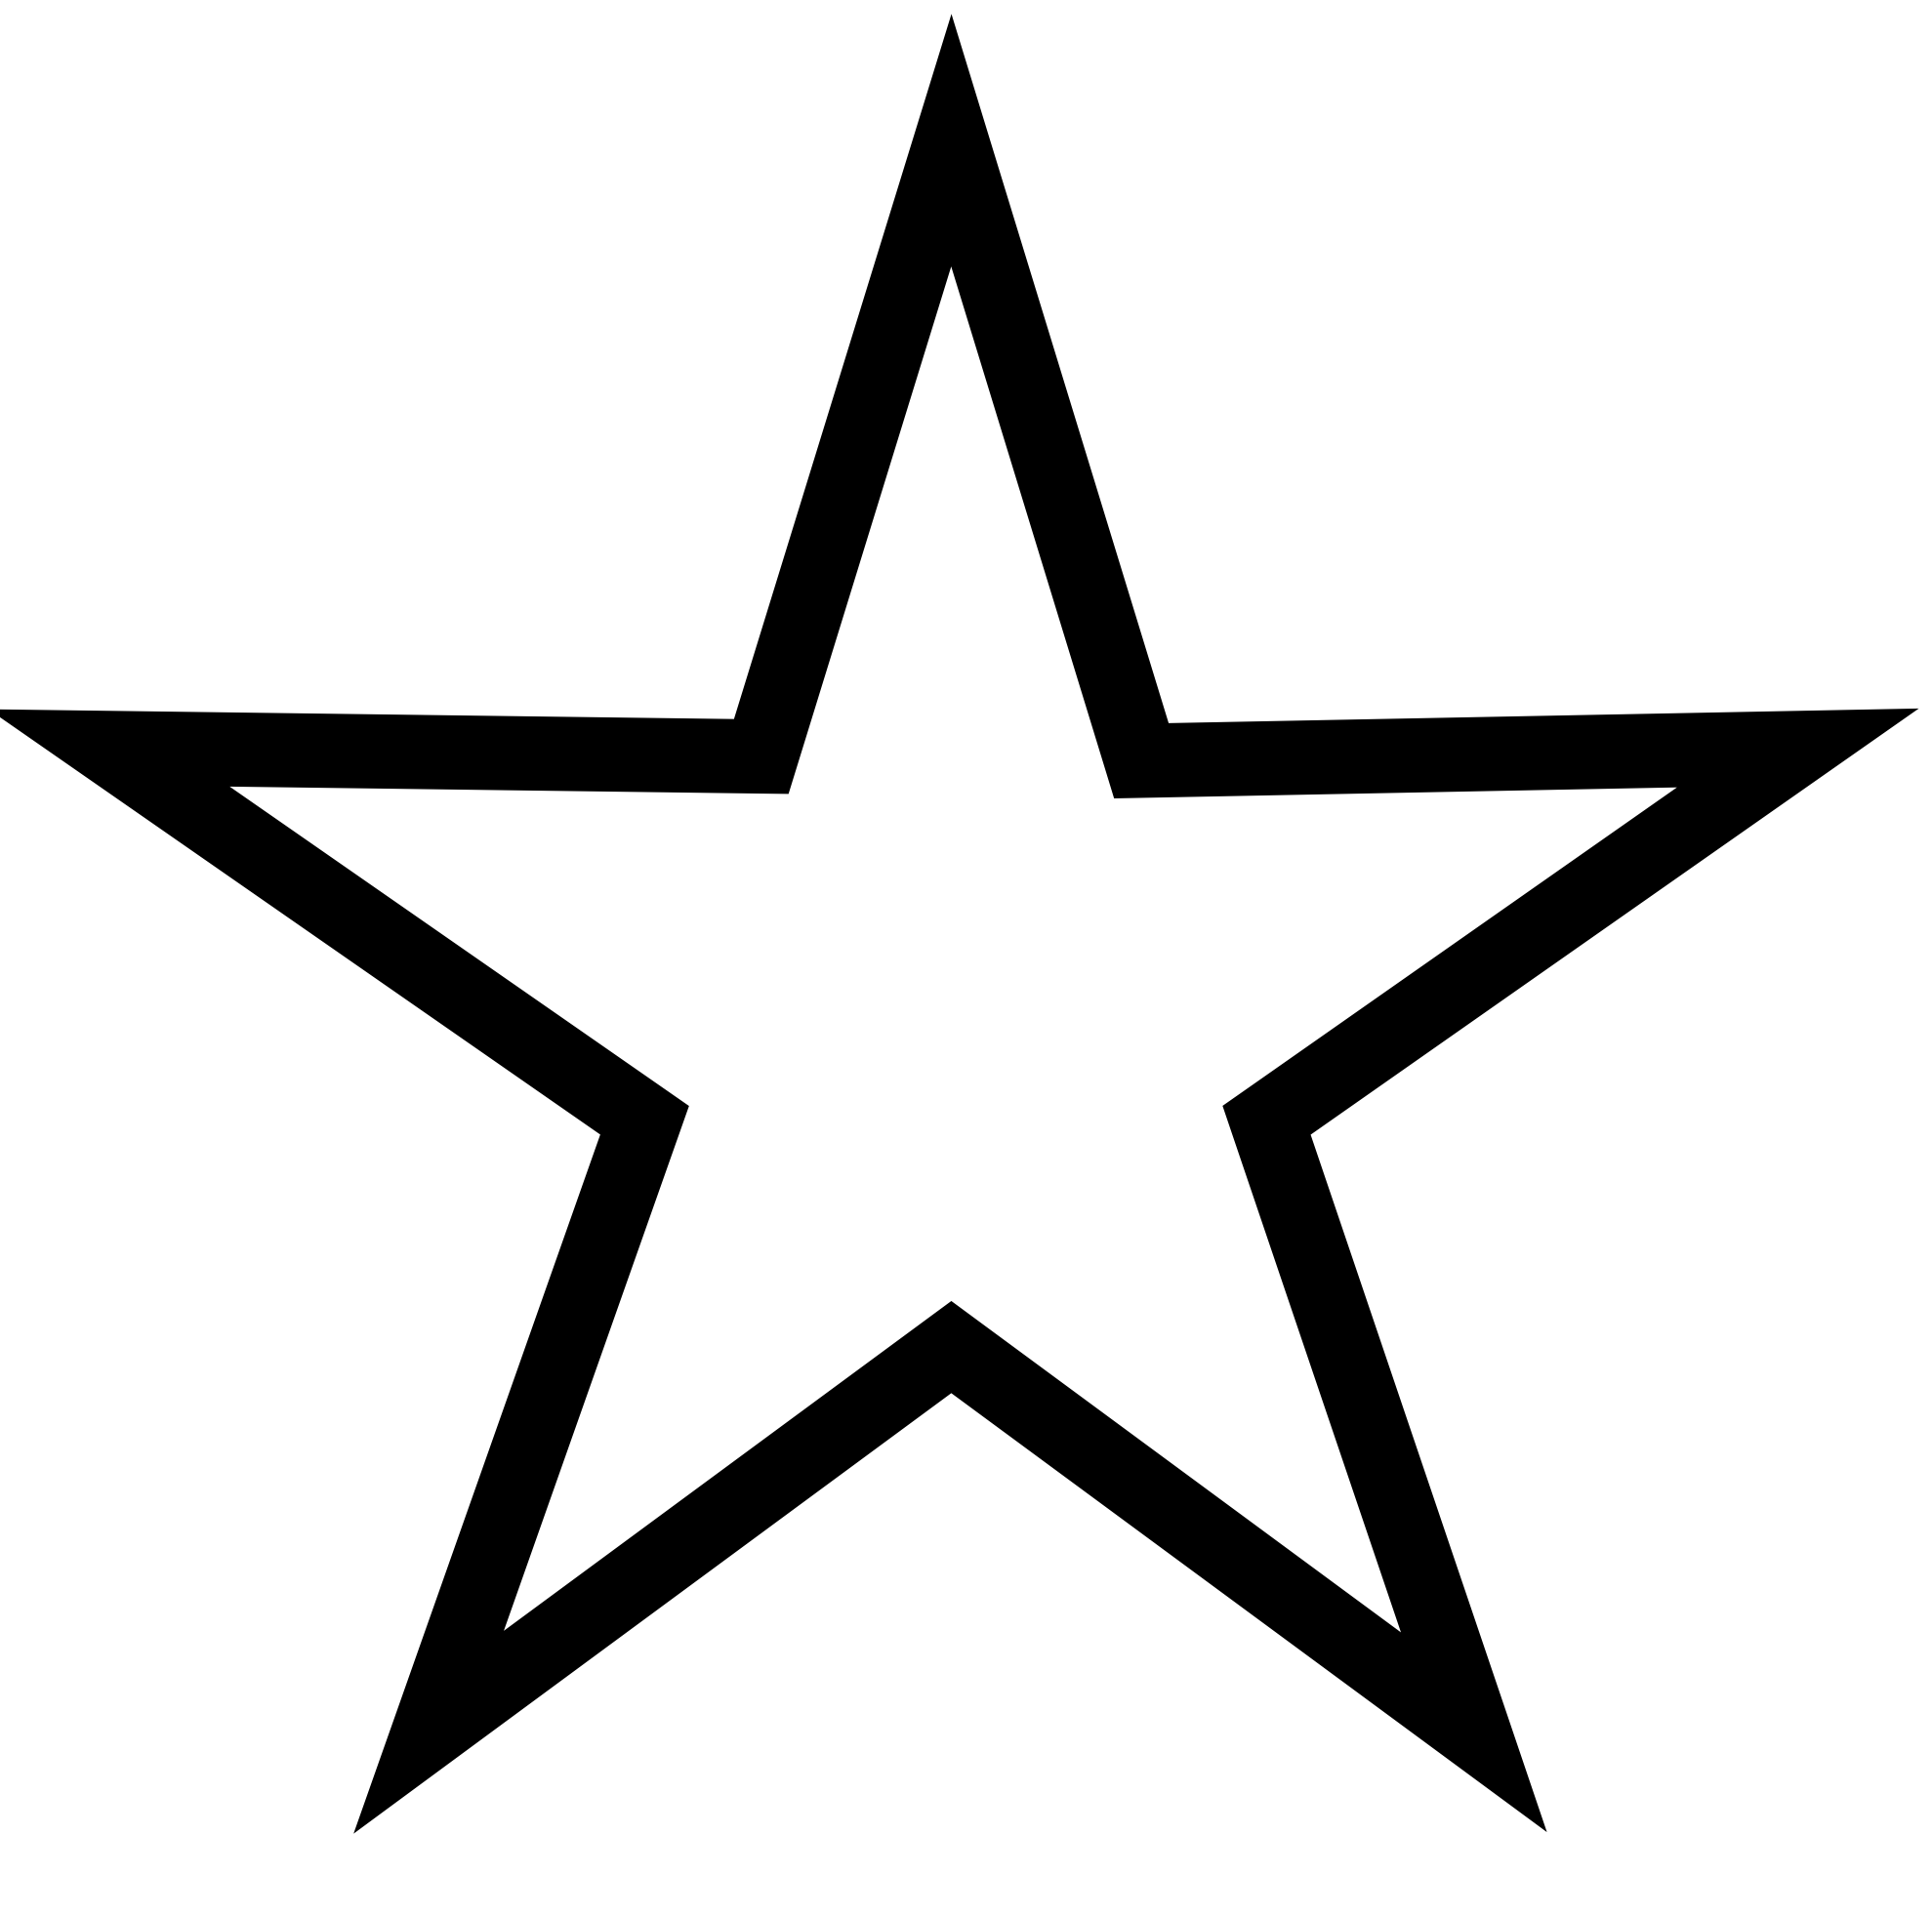 PNG Star Black And White - 60944